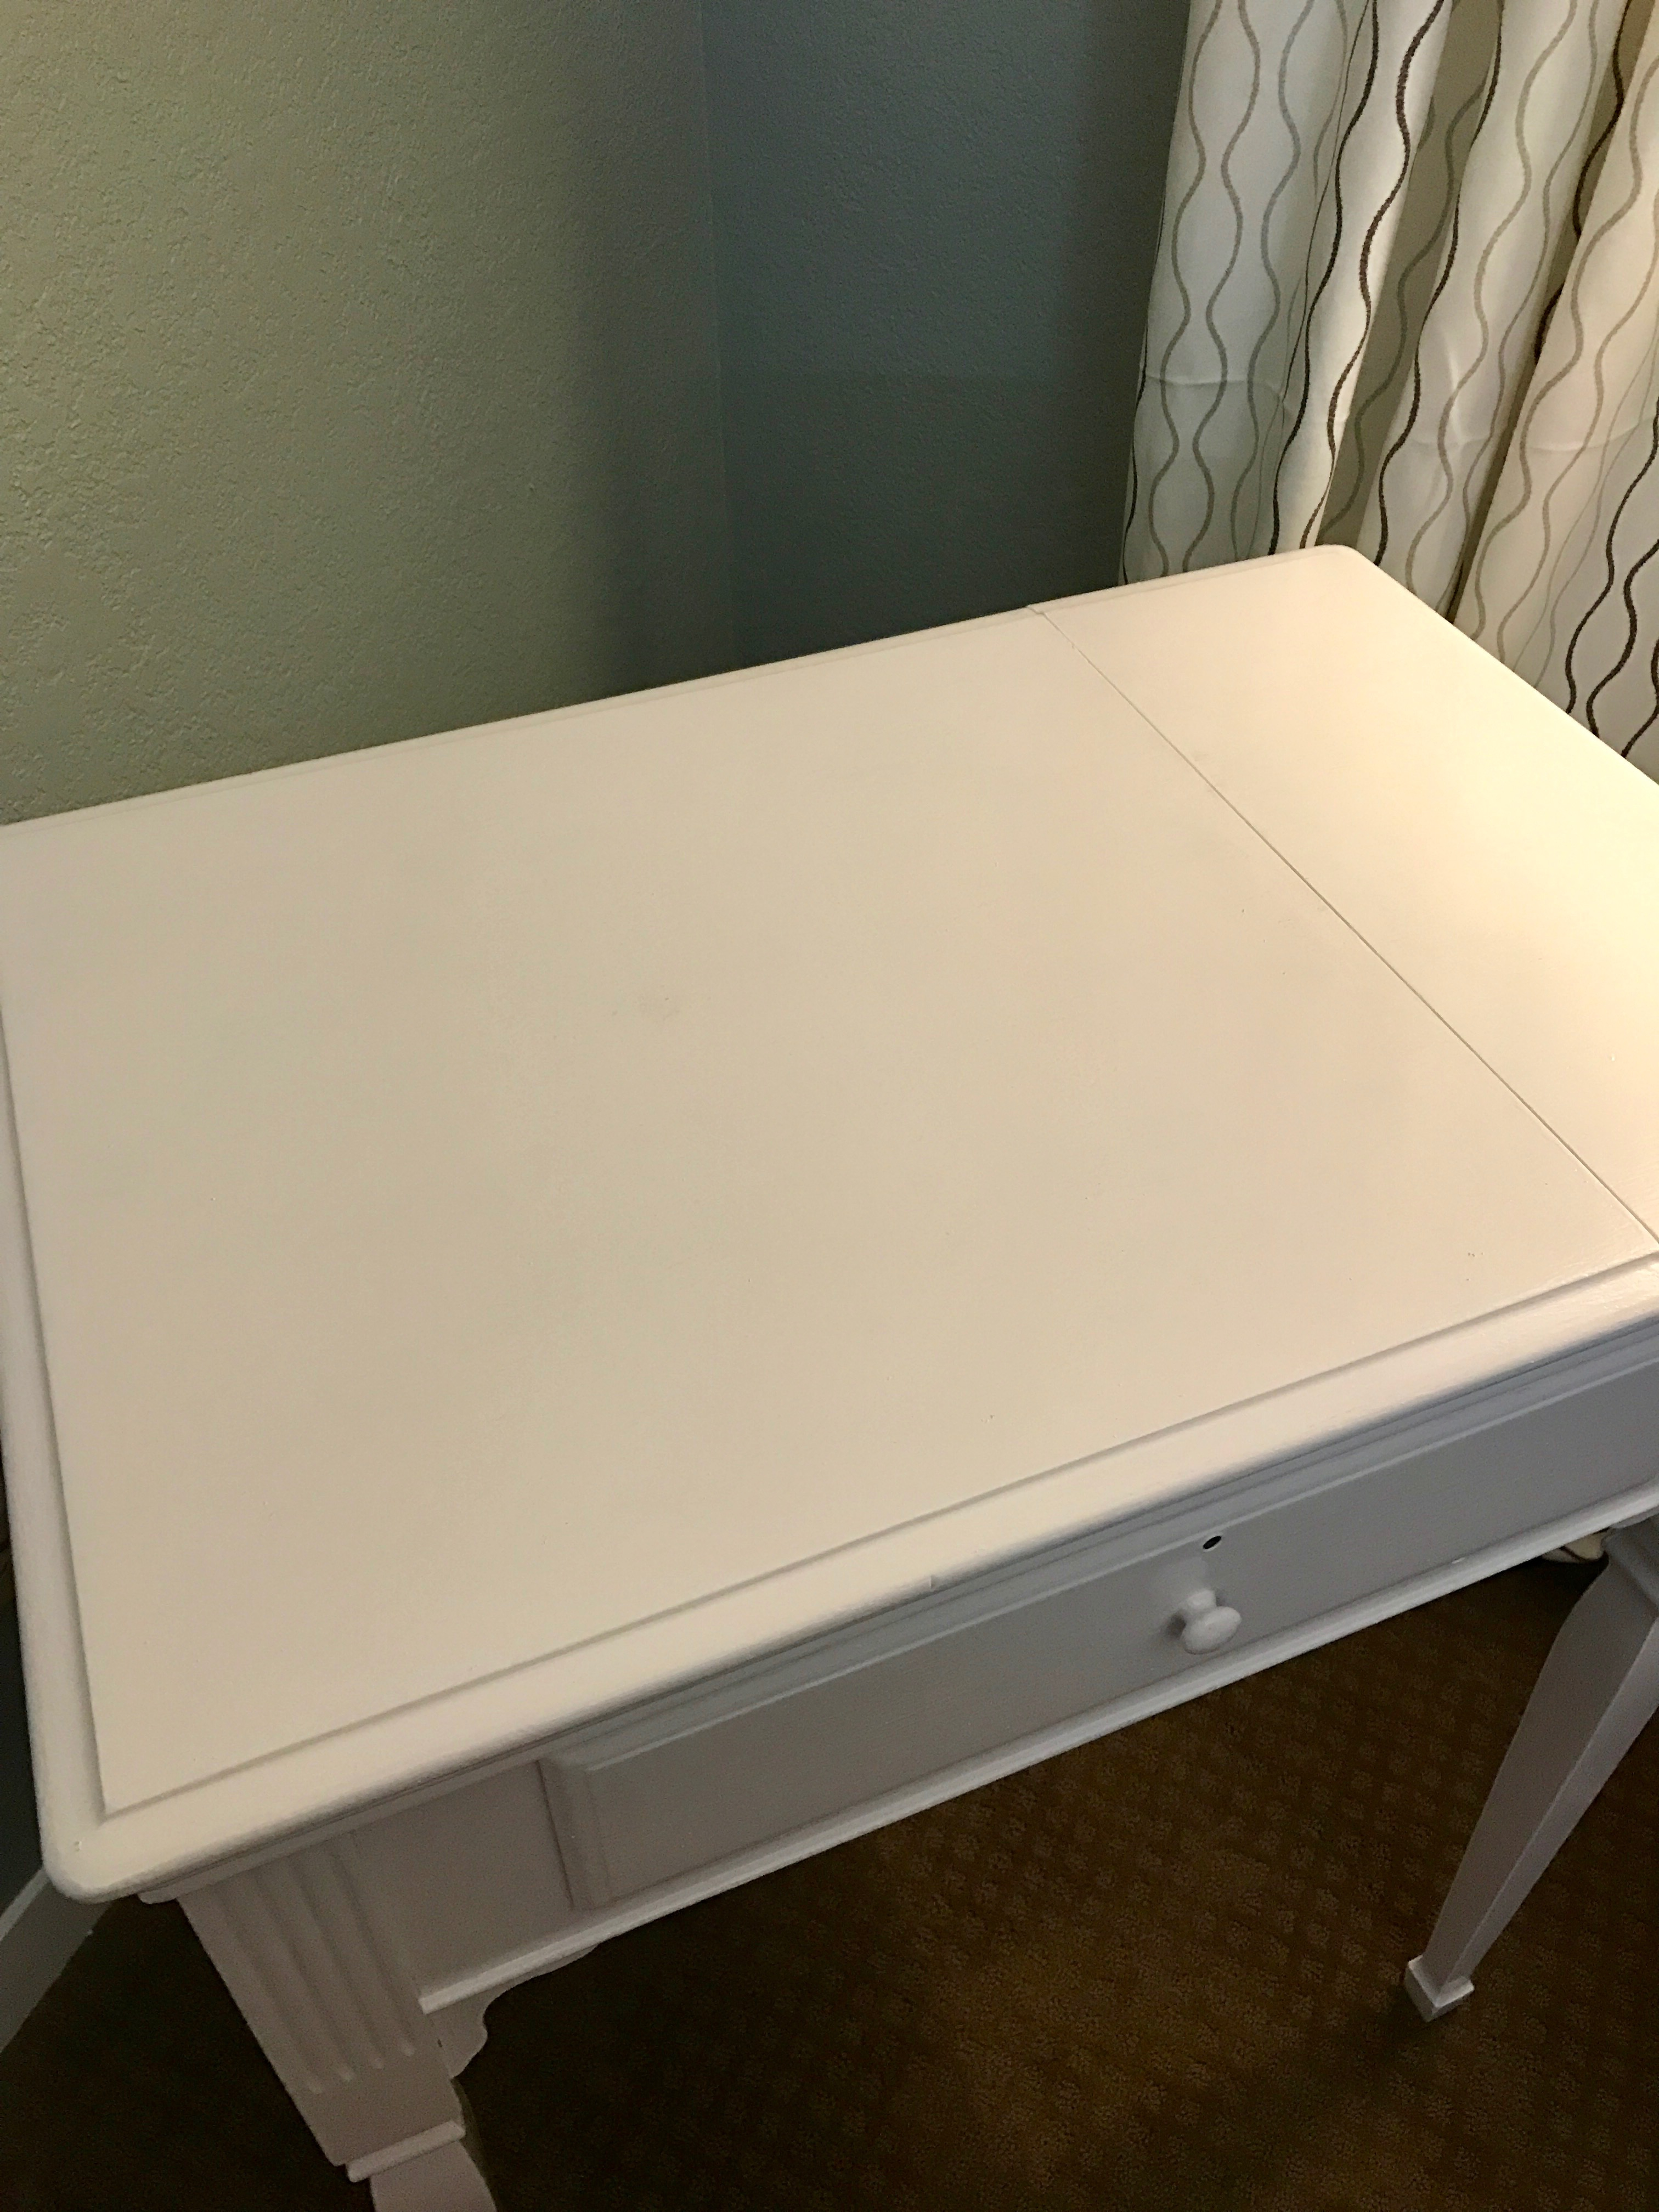 – Painting the Sewing Cabinet